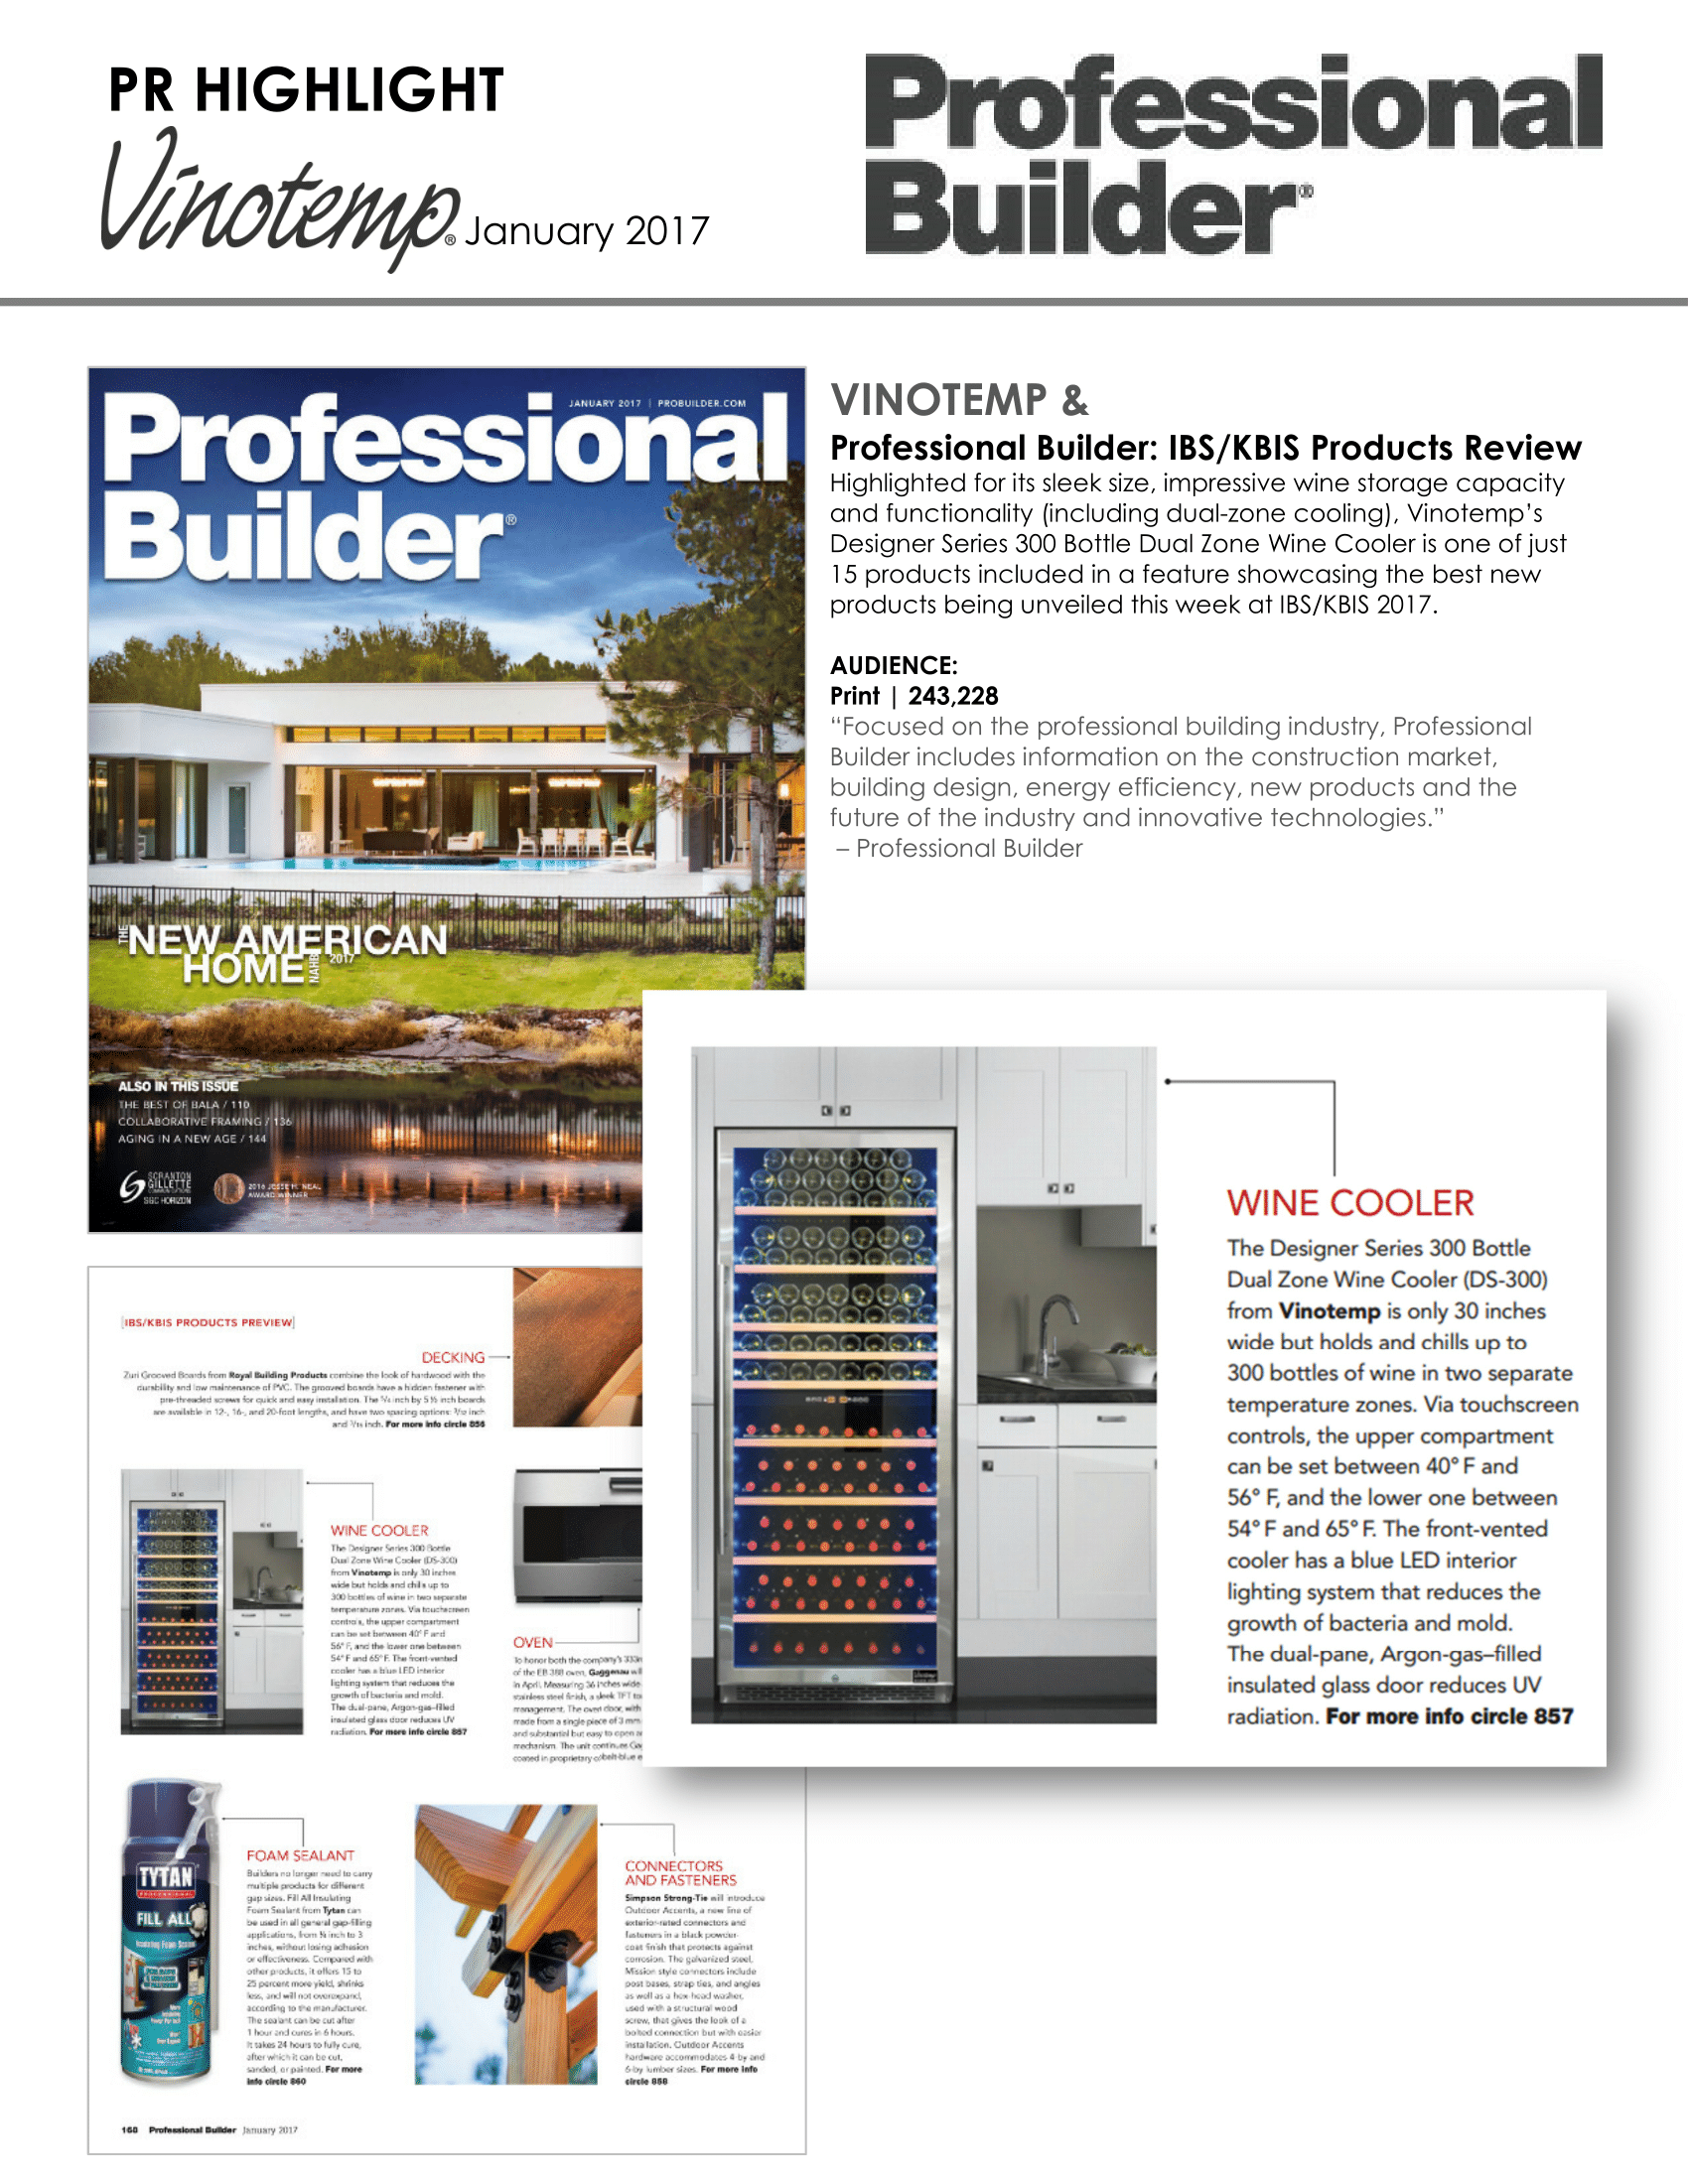 Vinotemp featured in Professional Builder